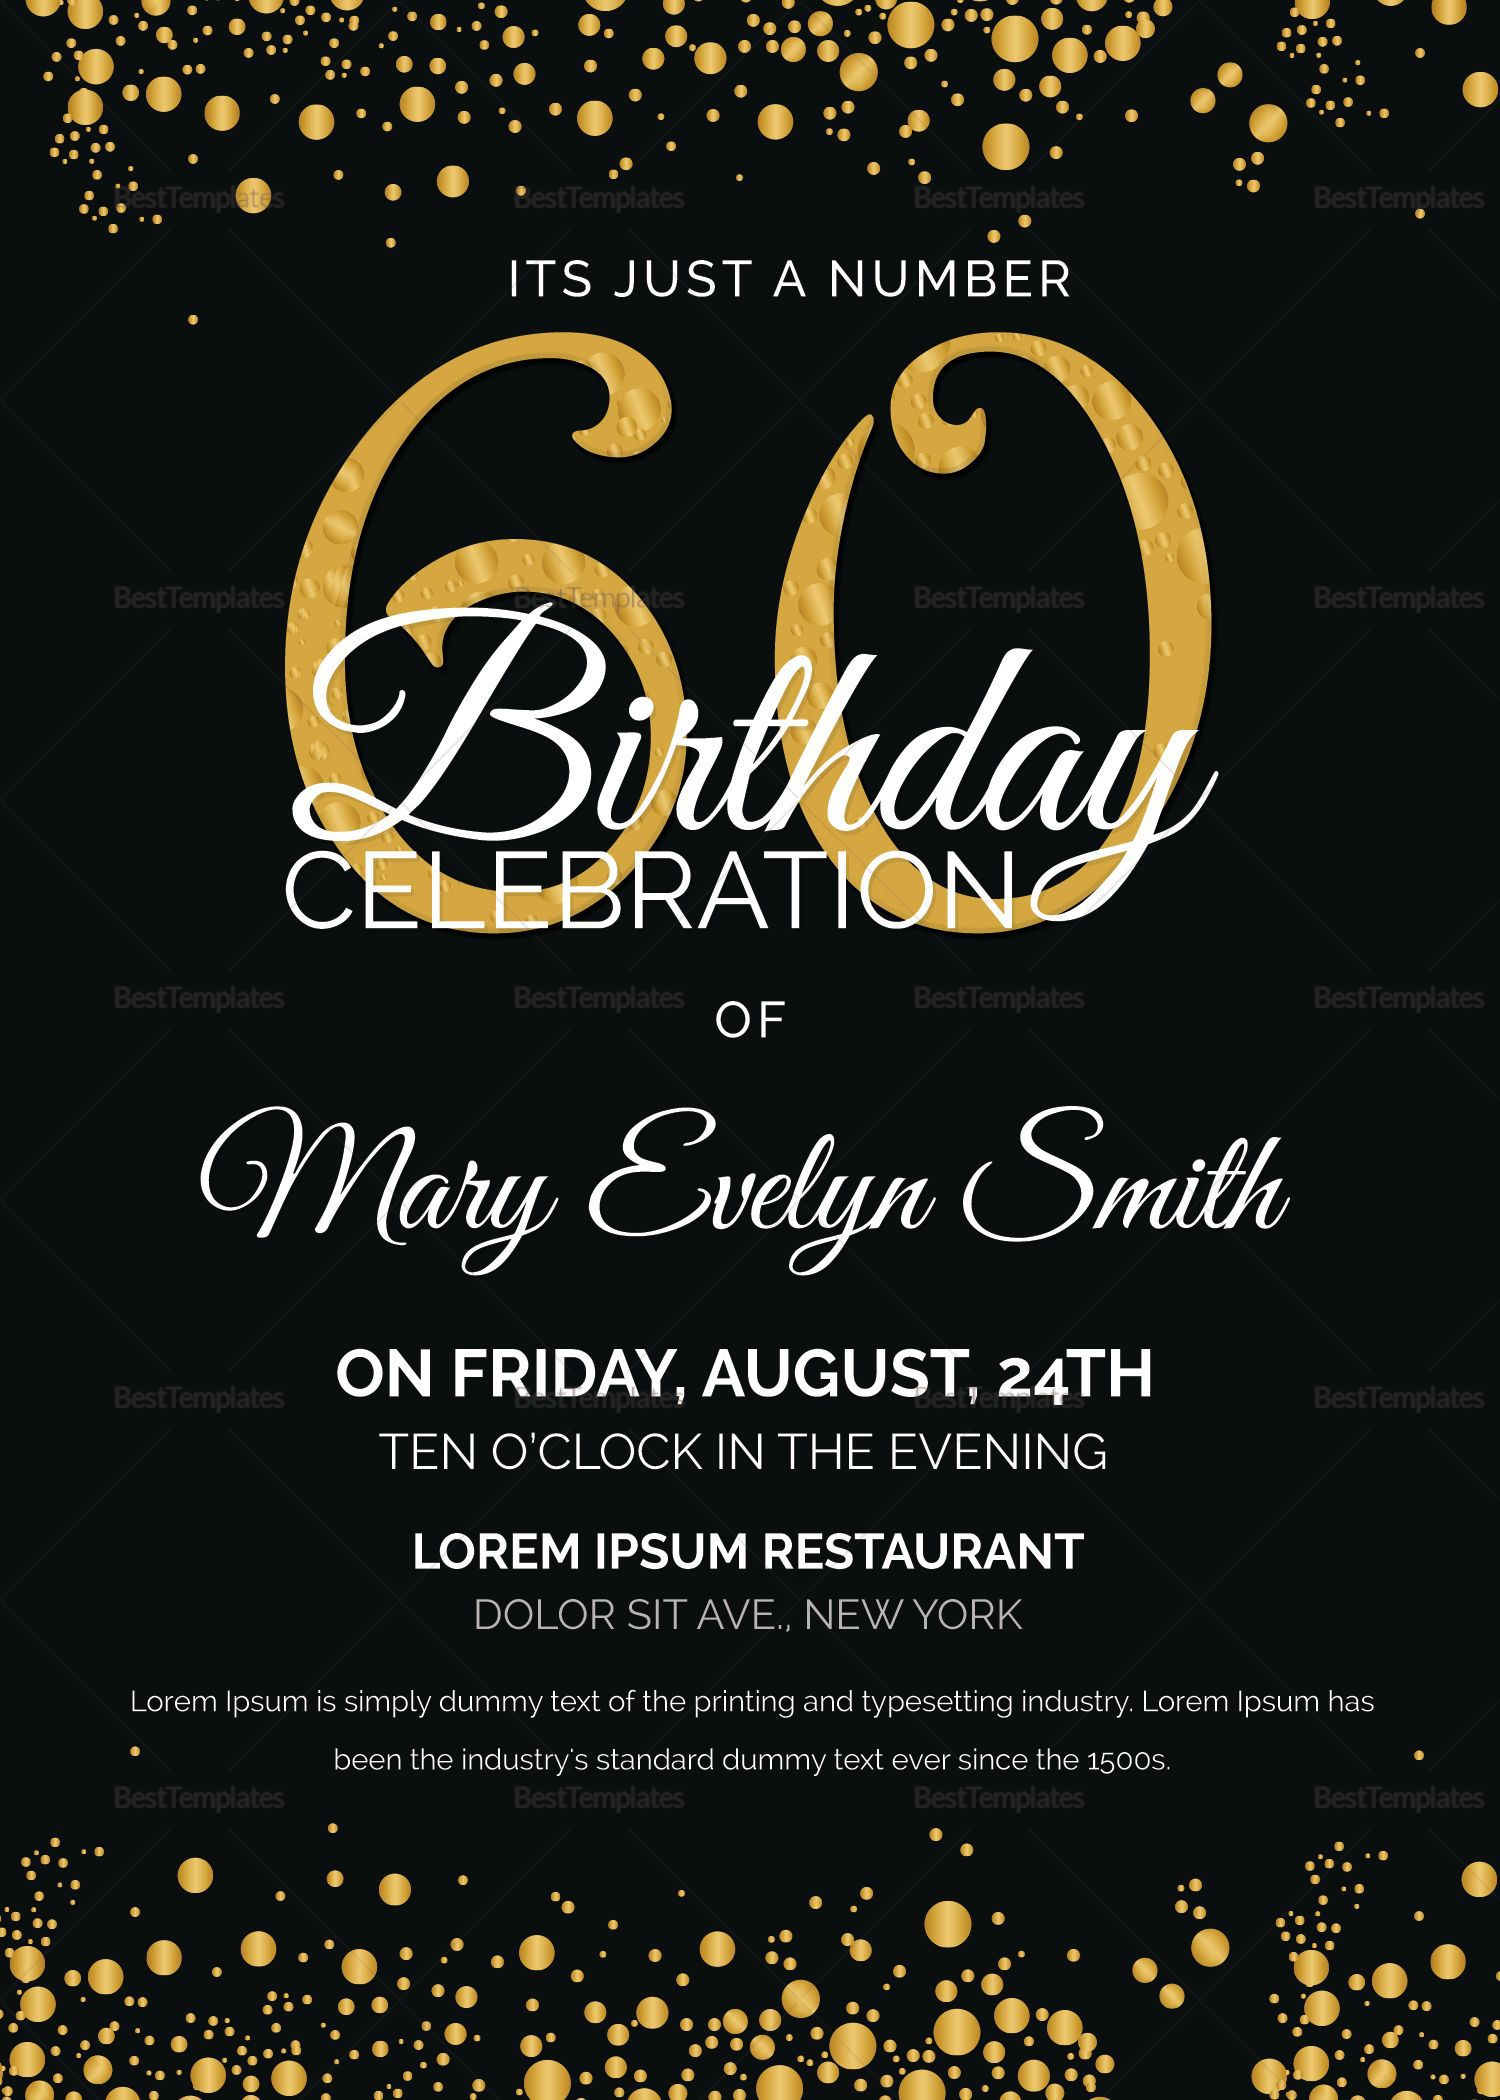 006 Impressive 60th Birthday Invitation Template Example  Card Free DownloadFull